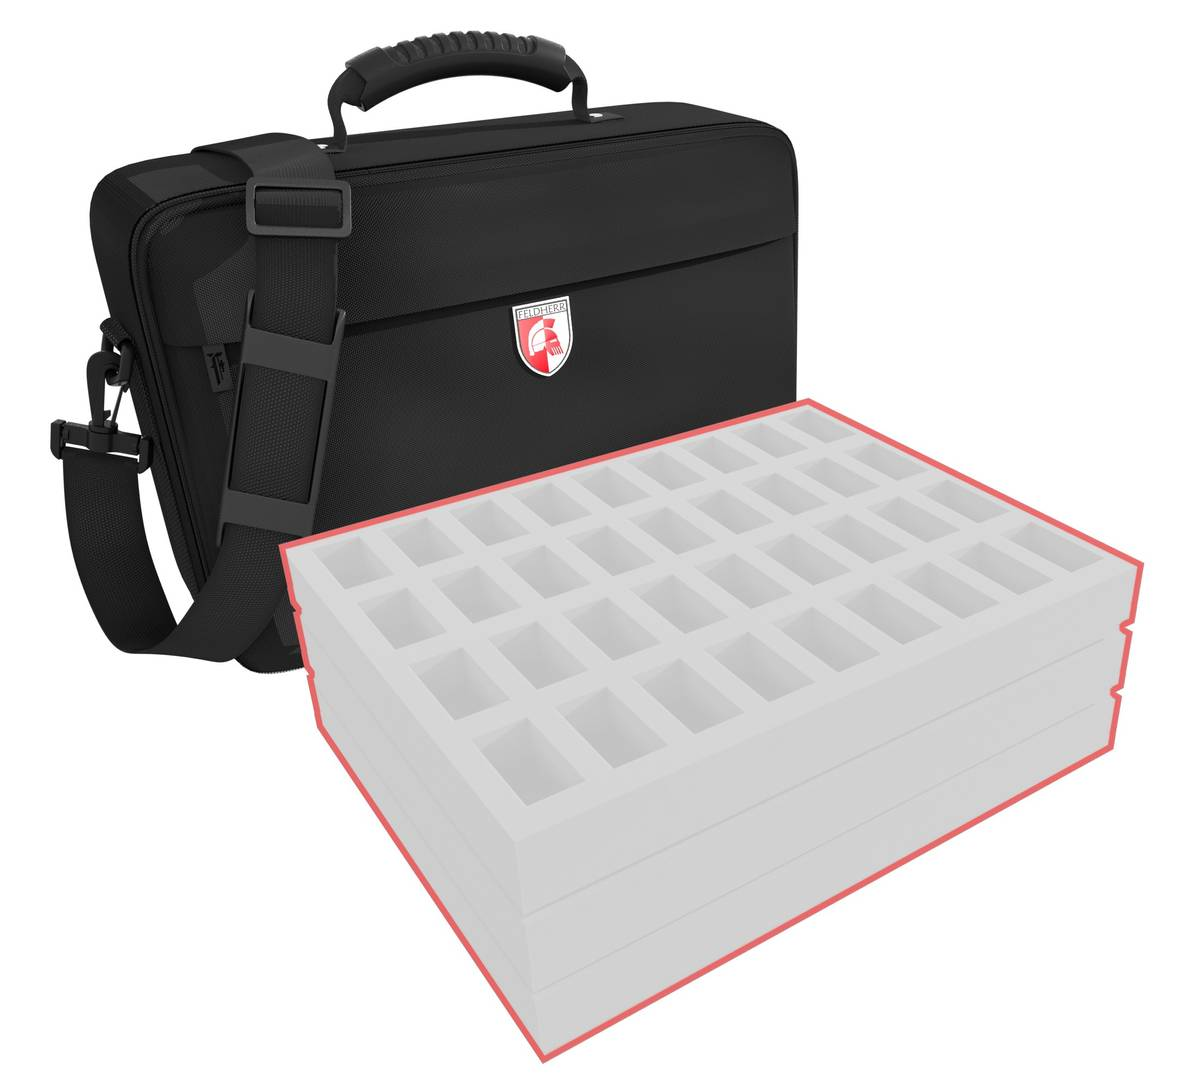 Feldherr MEDIUM custom bag - 120 mm Full-Size foam trays of your choice